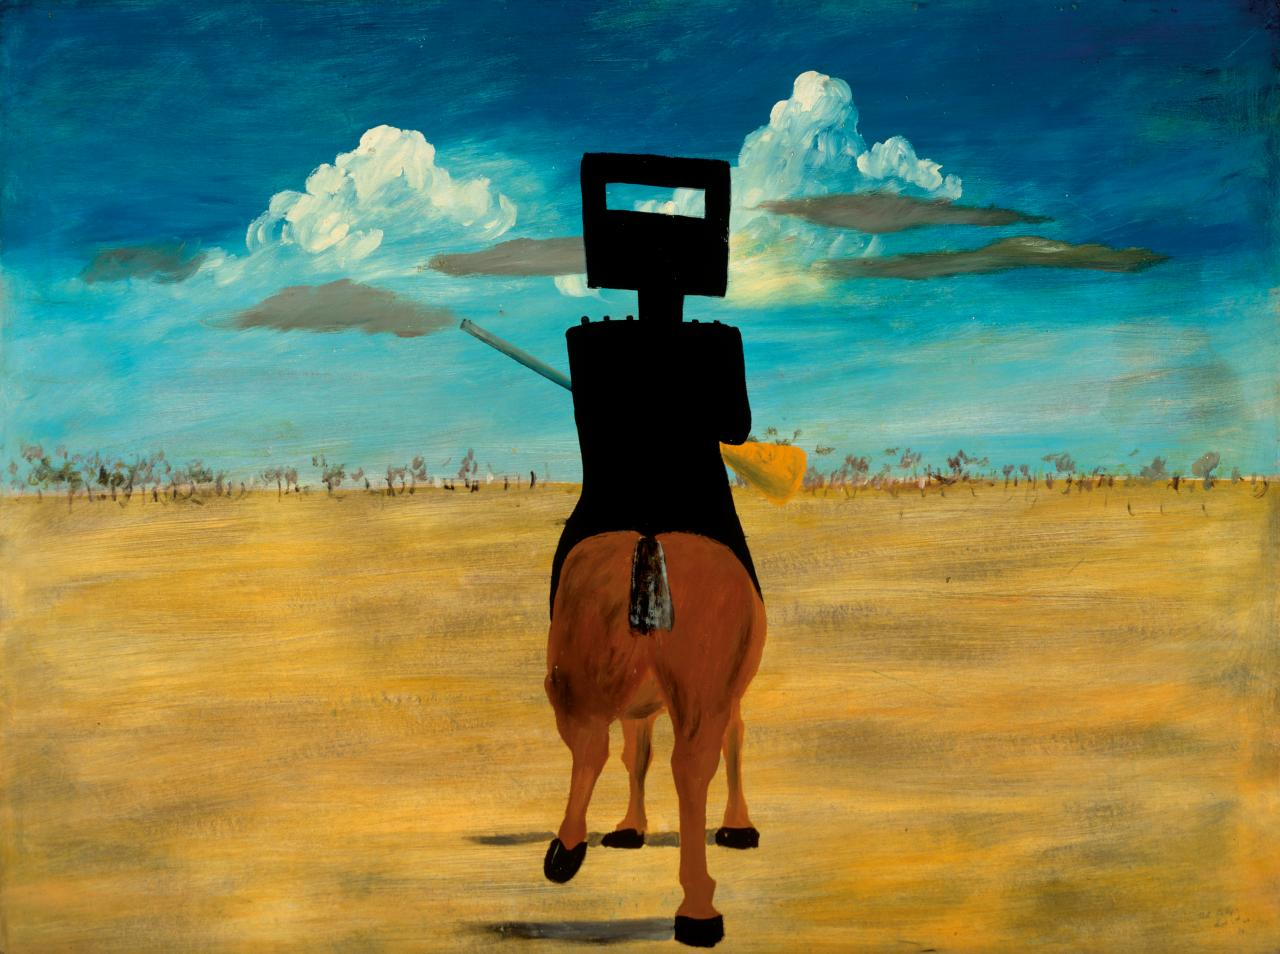 Sidney Nolan born Australia 1917, lived in England 1953-92, died England 1992